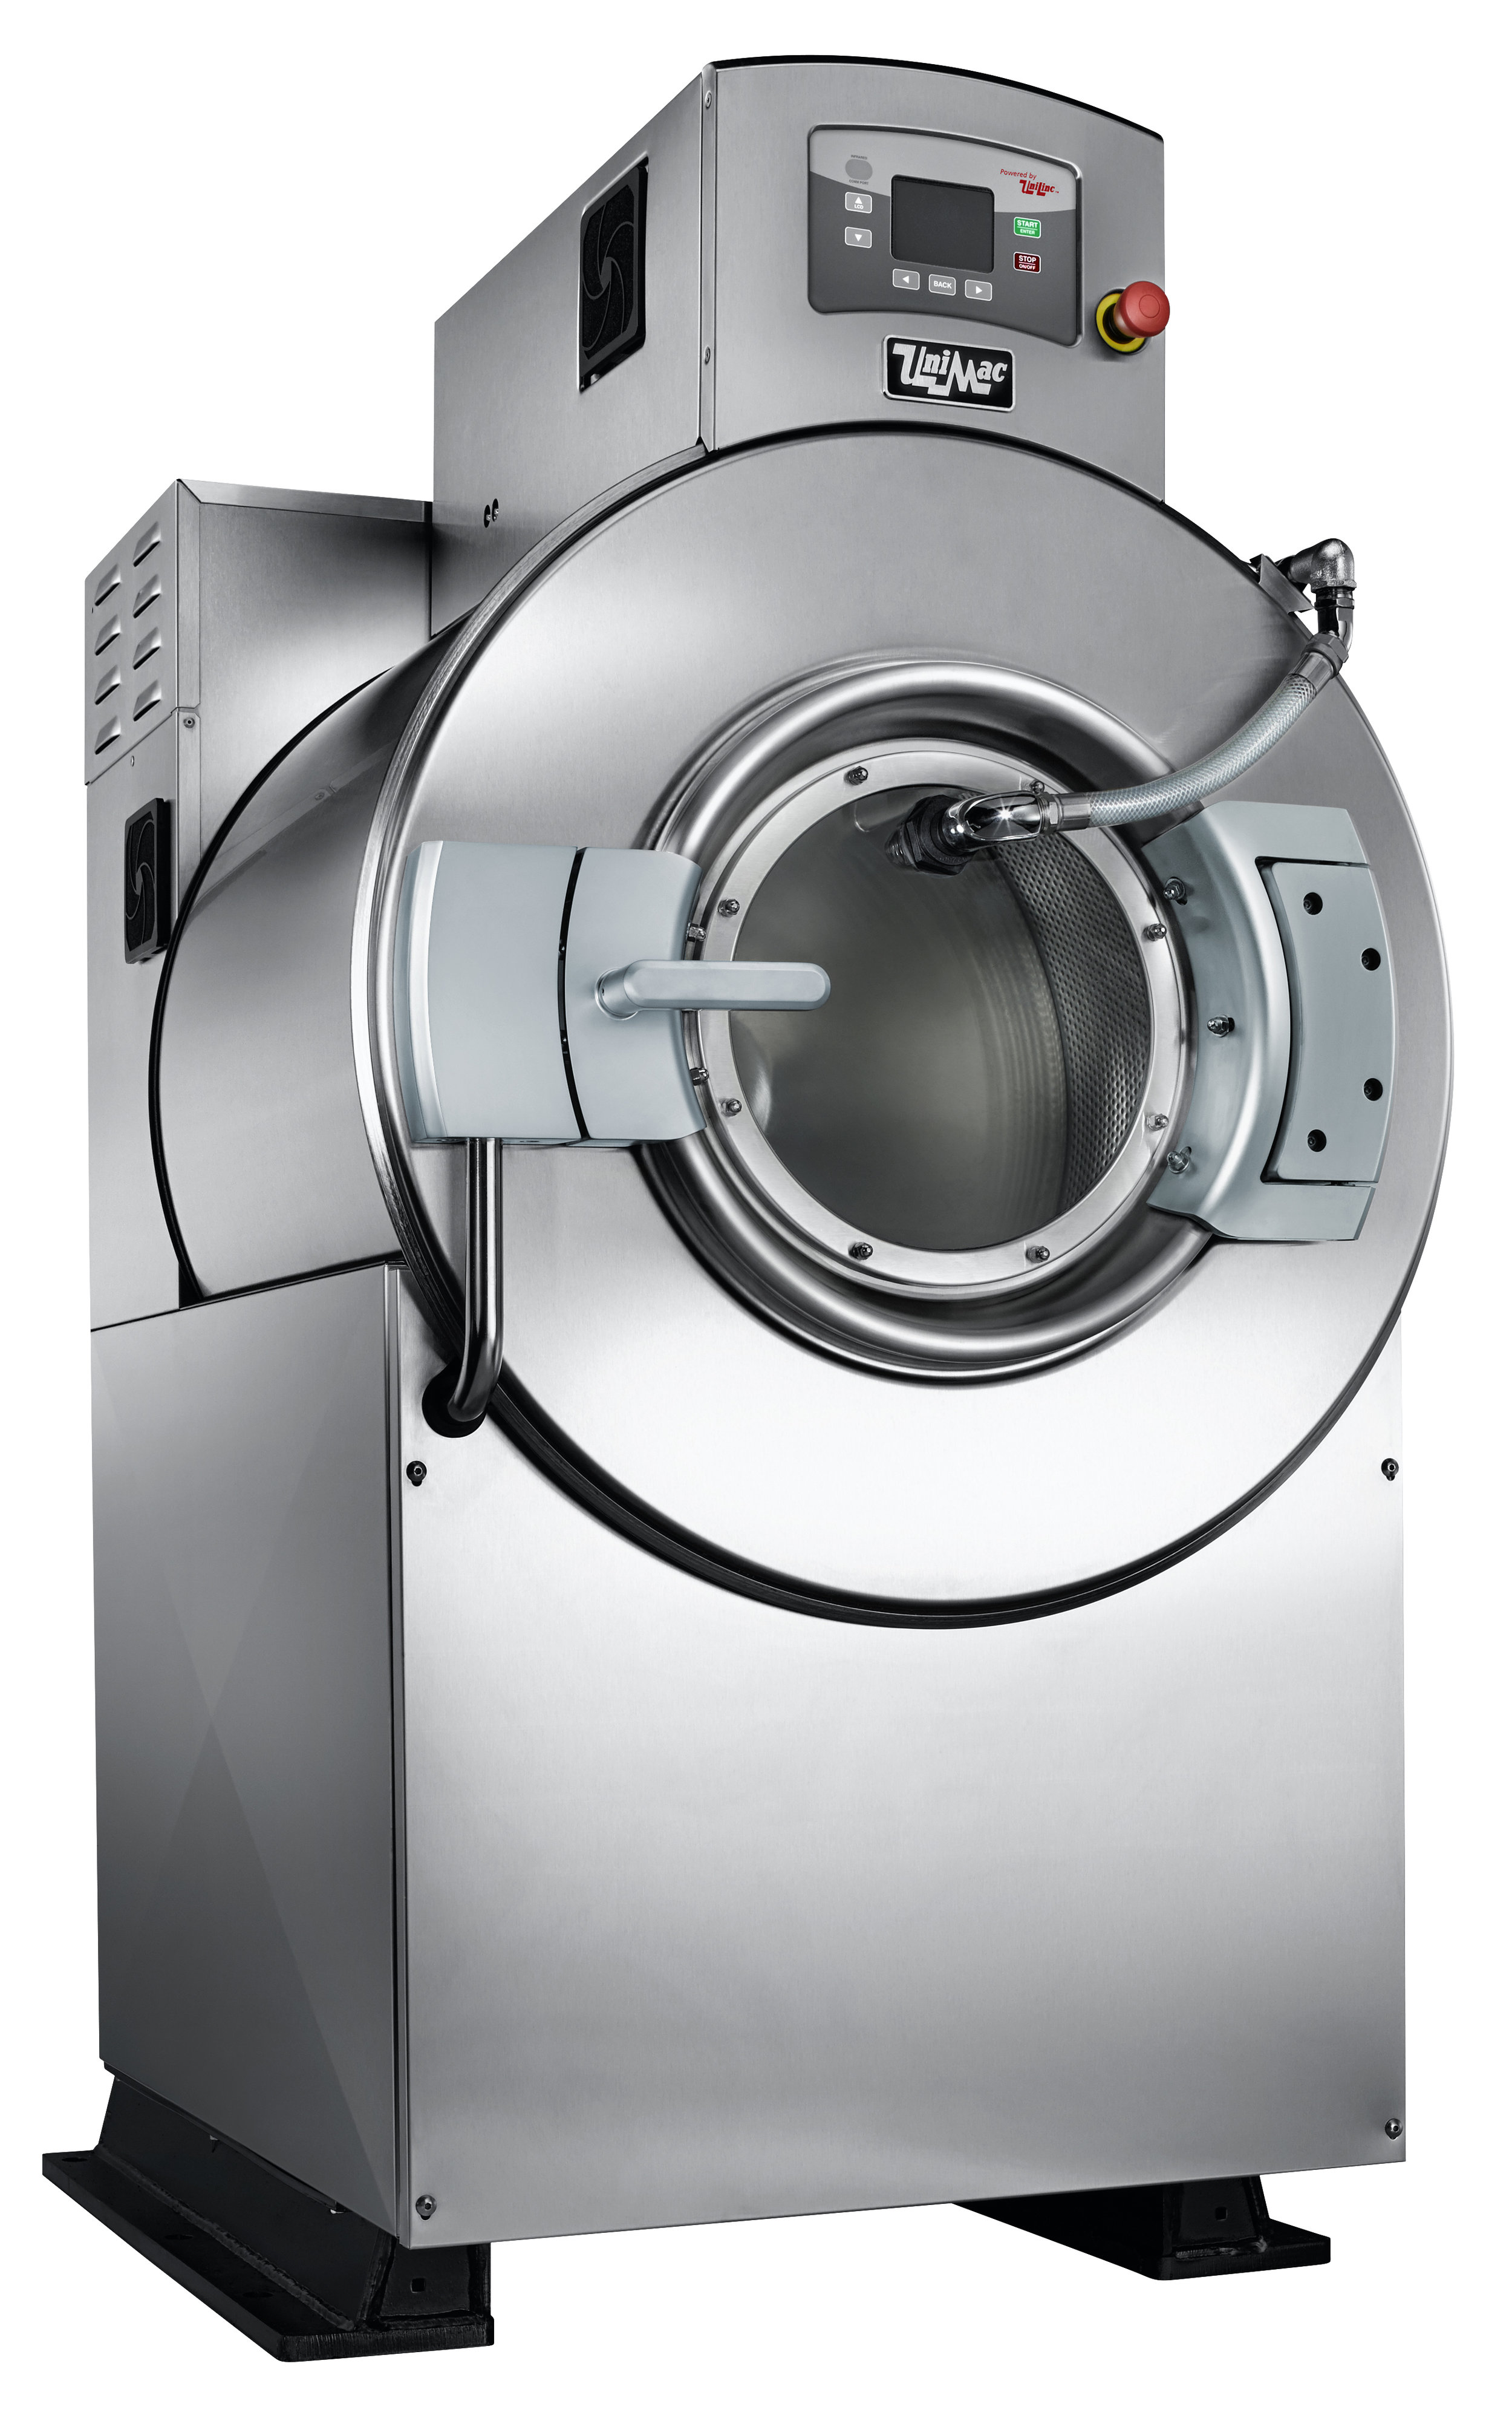 UniMac commercial washer  Robust industrial washer  Washer-extractor for bunker suits  Commercial washer for workwear  Robust commercial washer